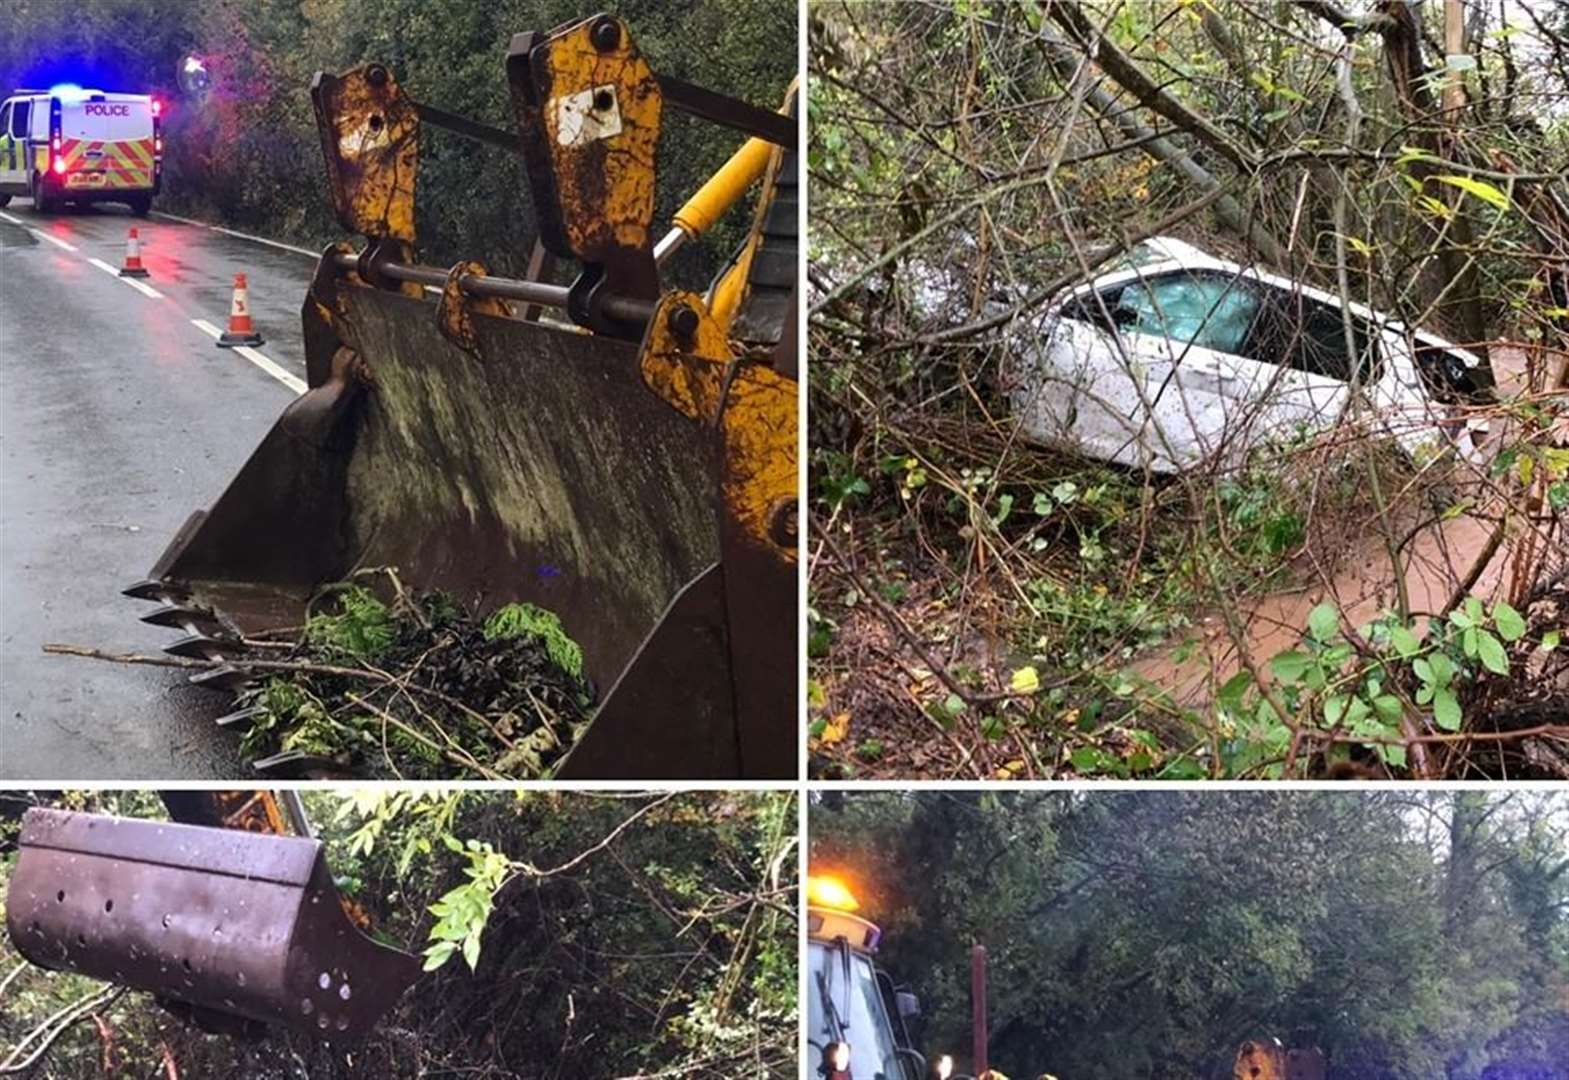 Suspected drink driver, 33, released under investigation after vehicle plunges into dyke